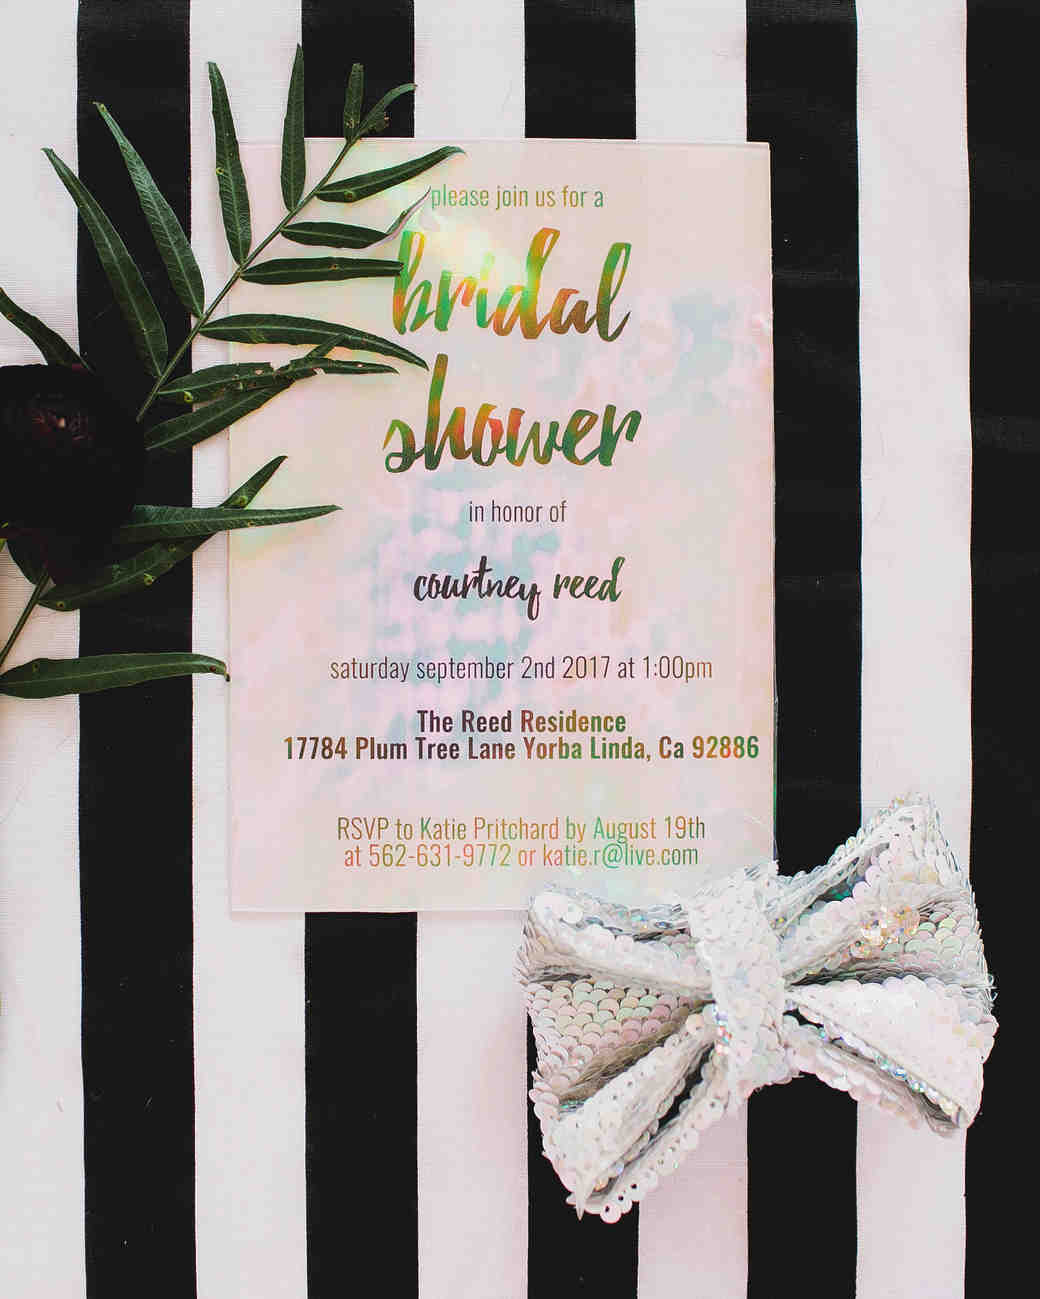 Bridal shower invitations we absolutely love martha stewart weddings bridal shower invitations katie pritchard filmwisefo